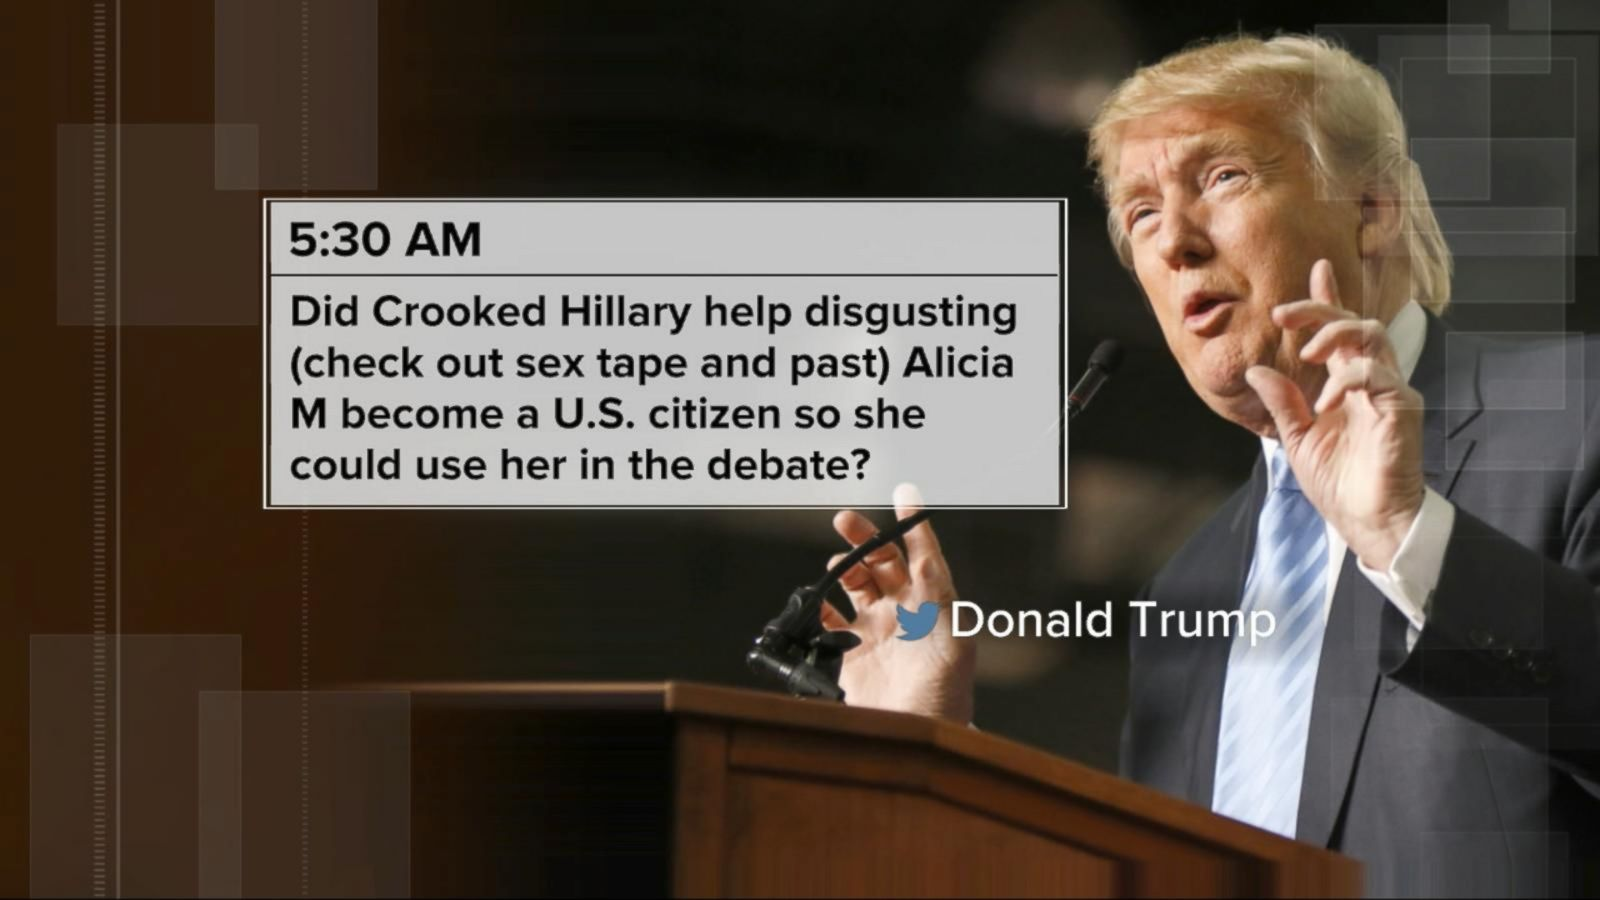 VIDEO: Trump Goes on Early Morning Twitter Attack